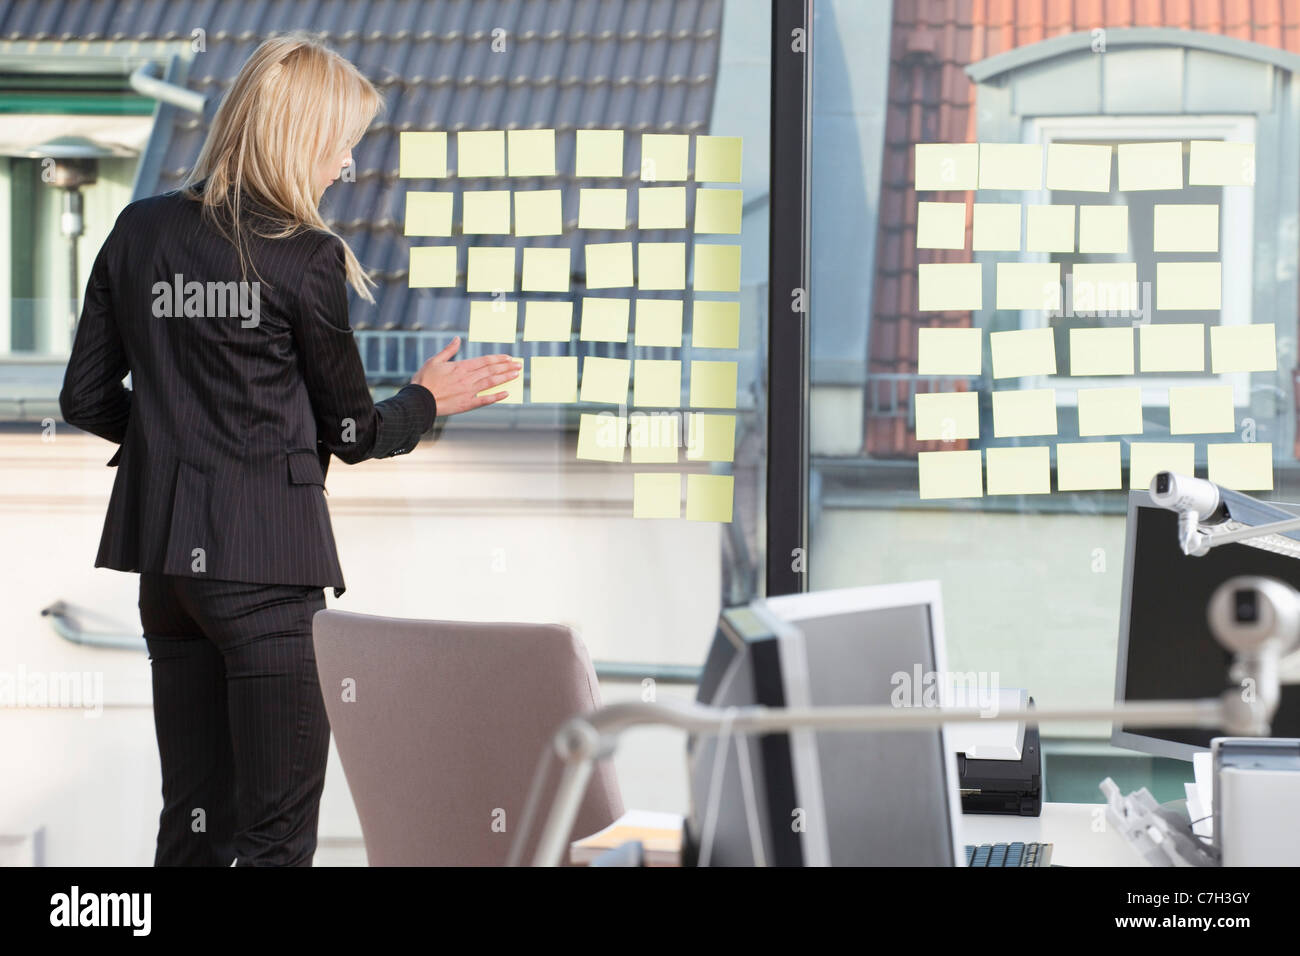 Businesswoman sticking many reminder notes to her office window - Stock Image